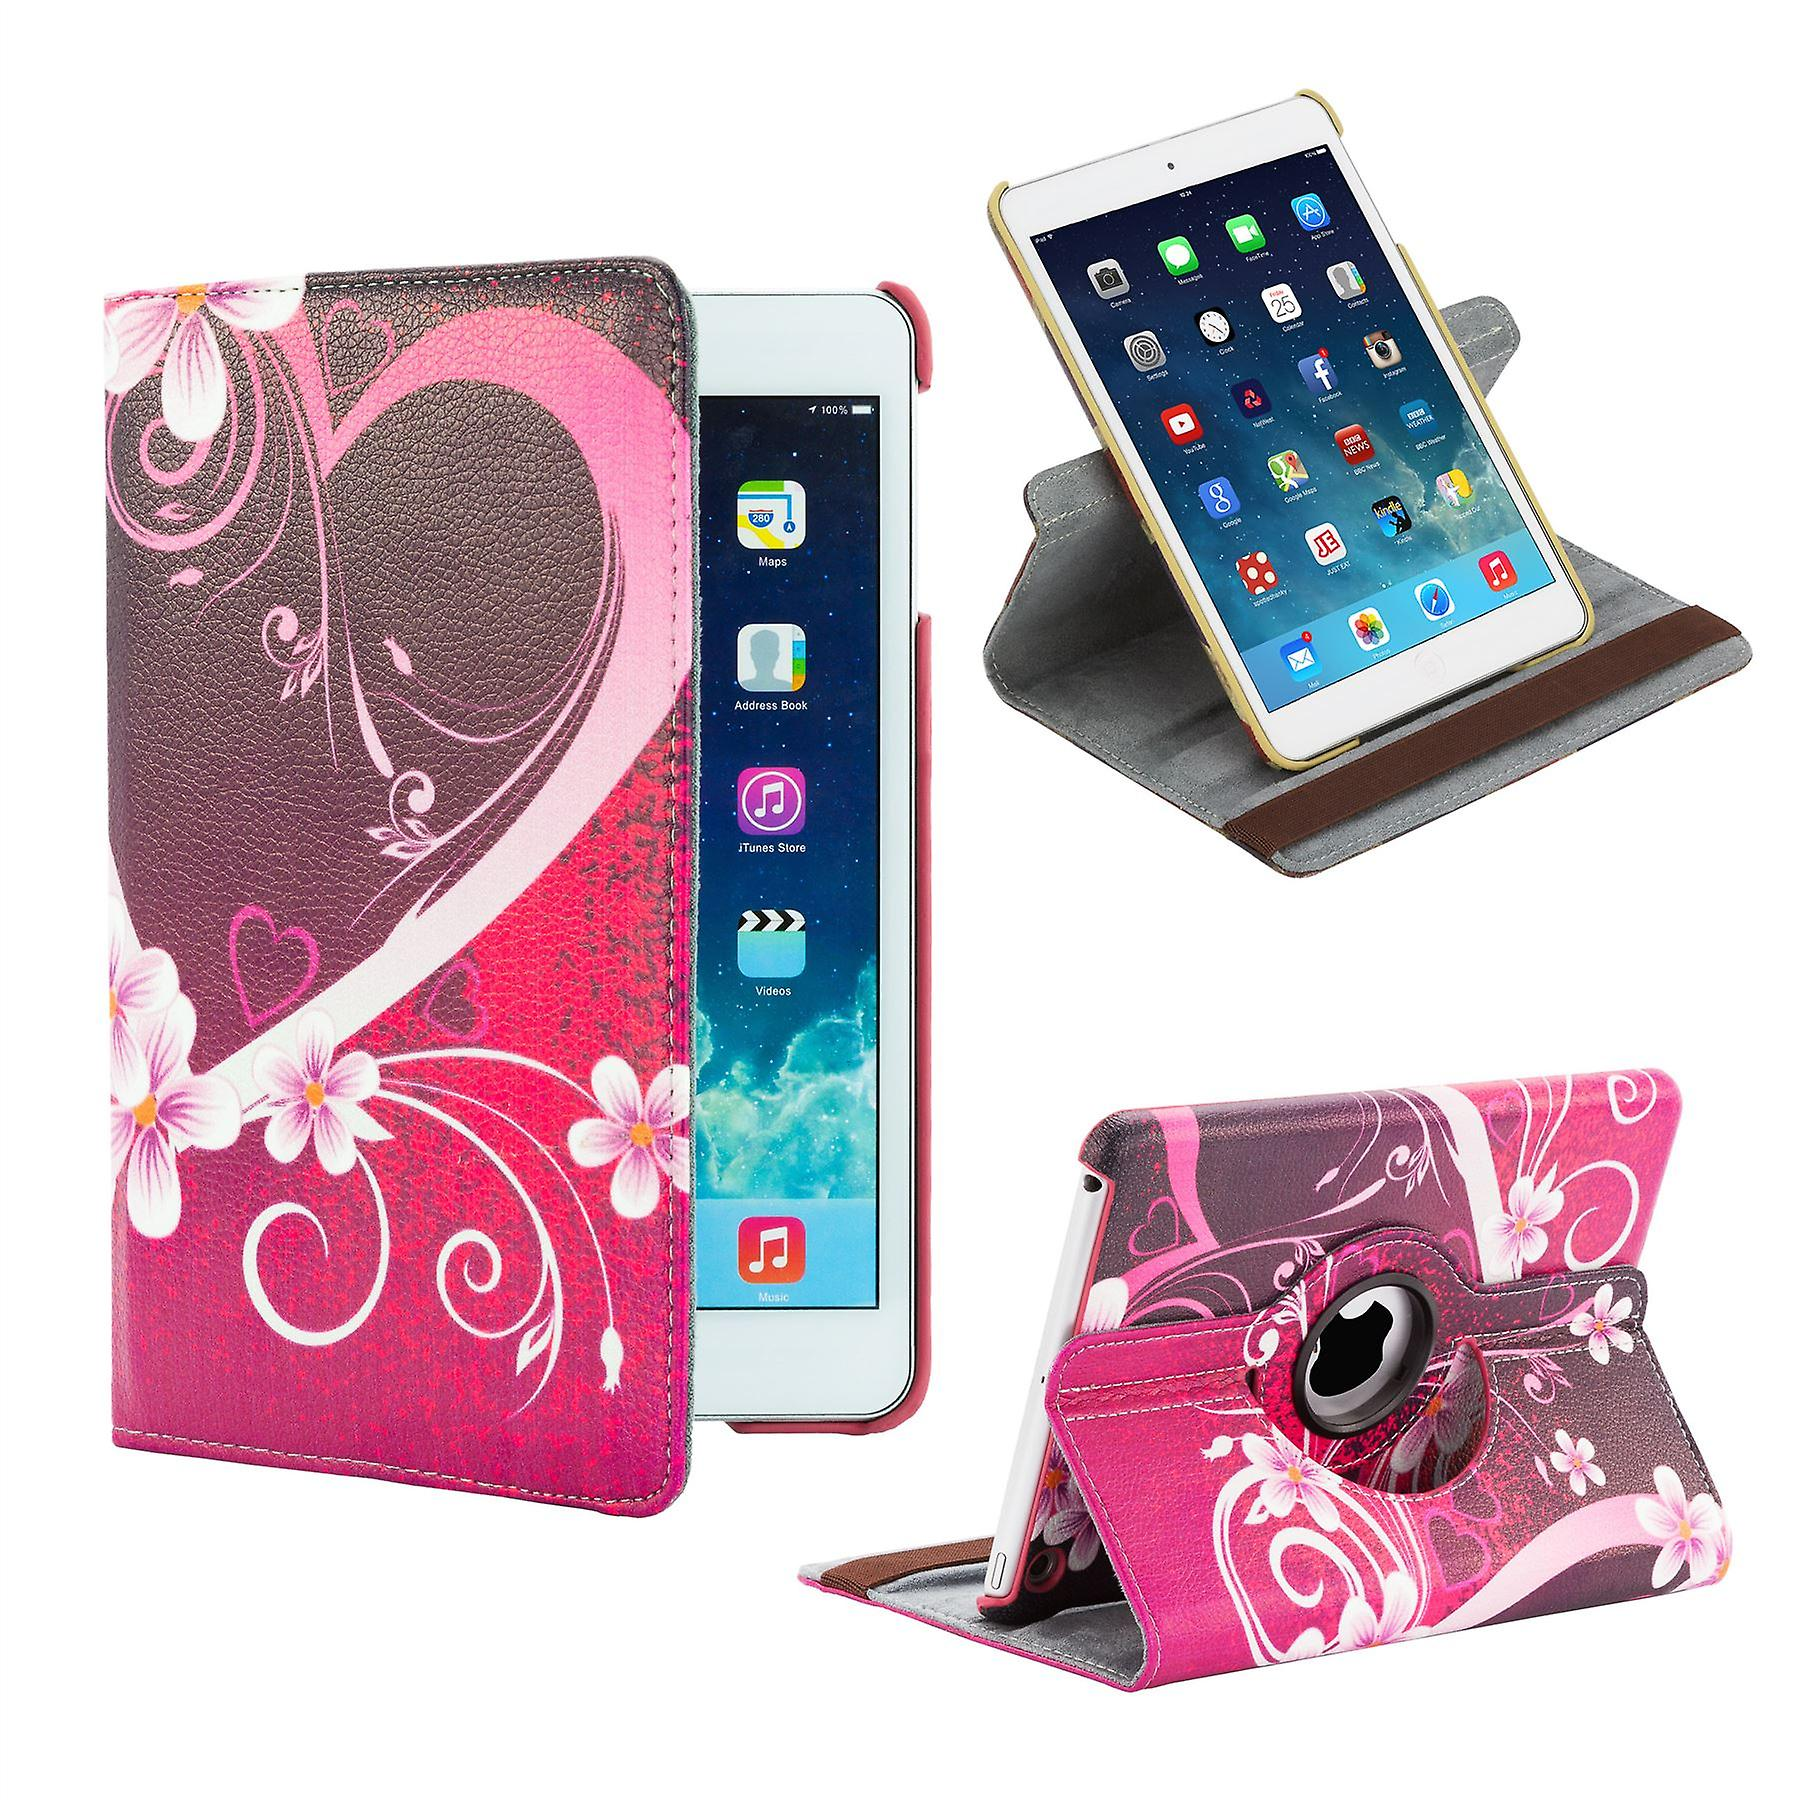 360 degree design case cover for iPad 2/3/4 - Love Heart